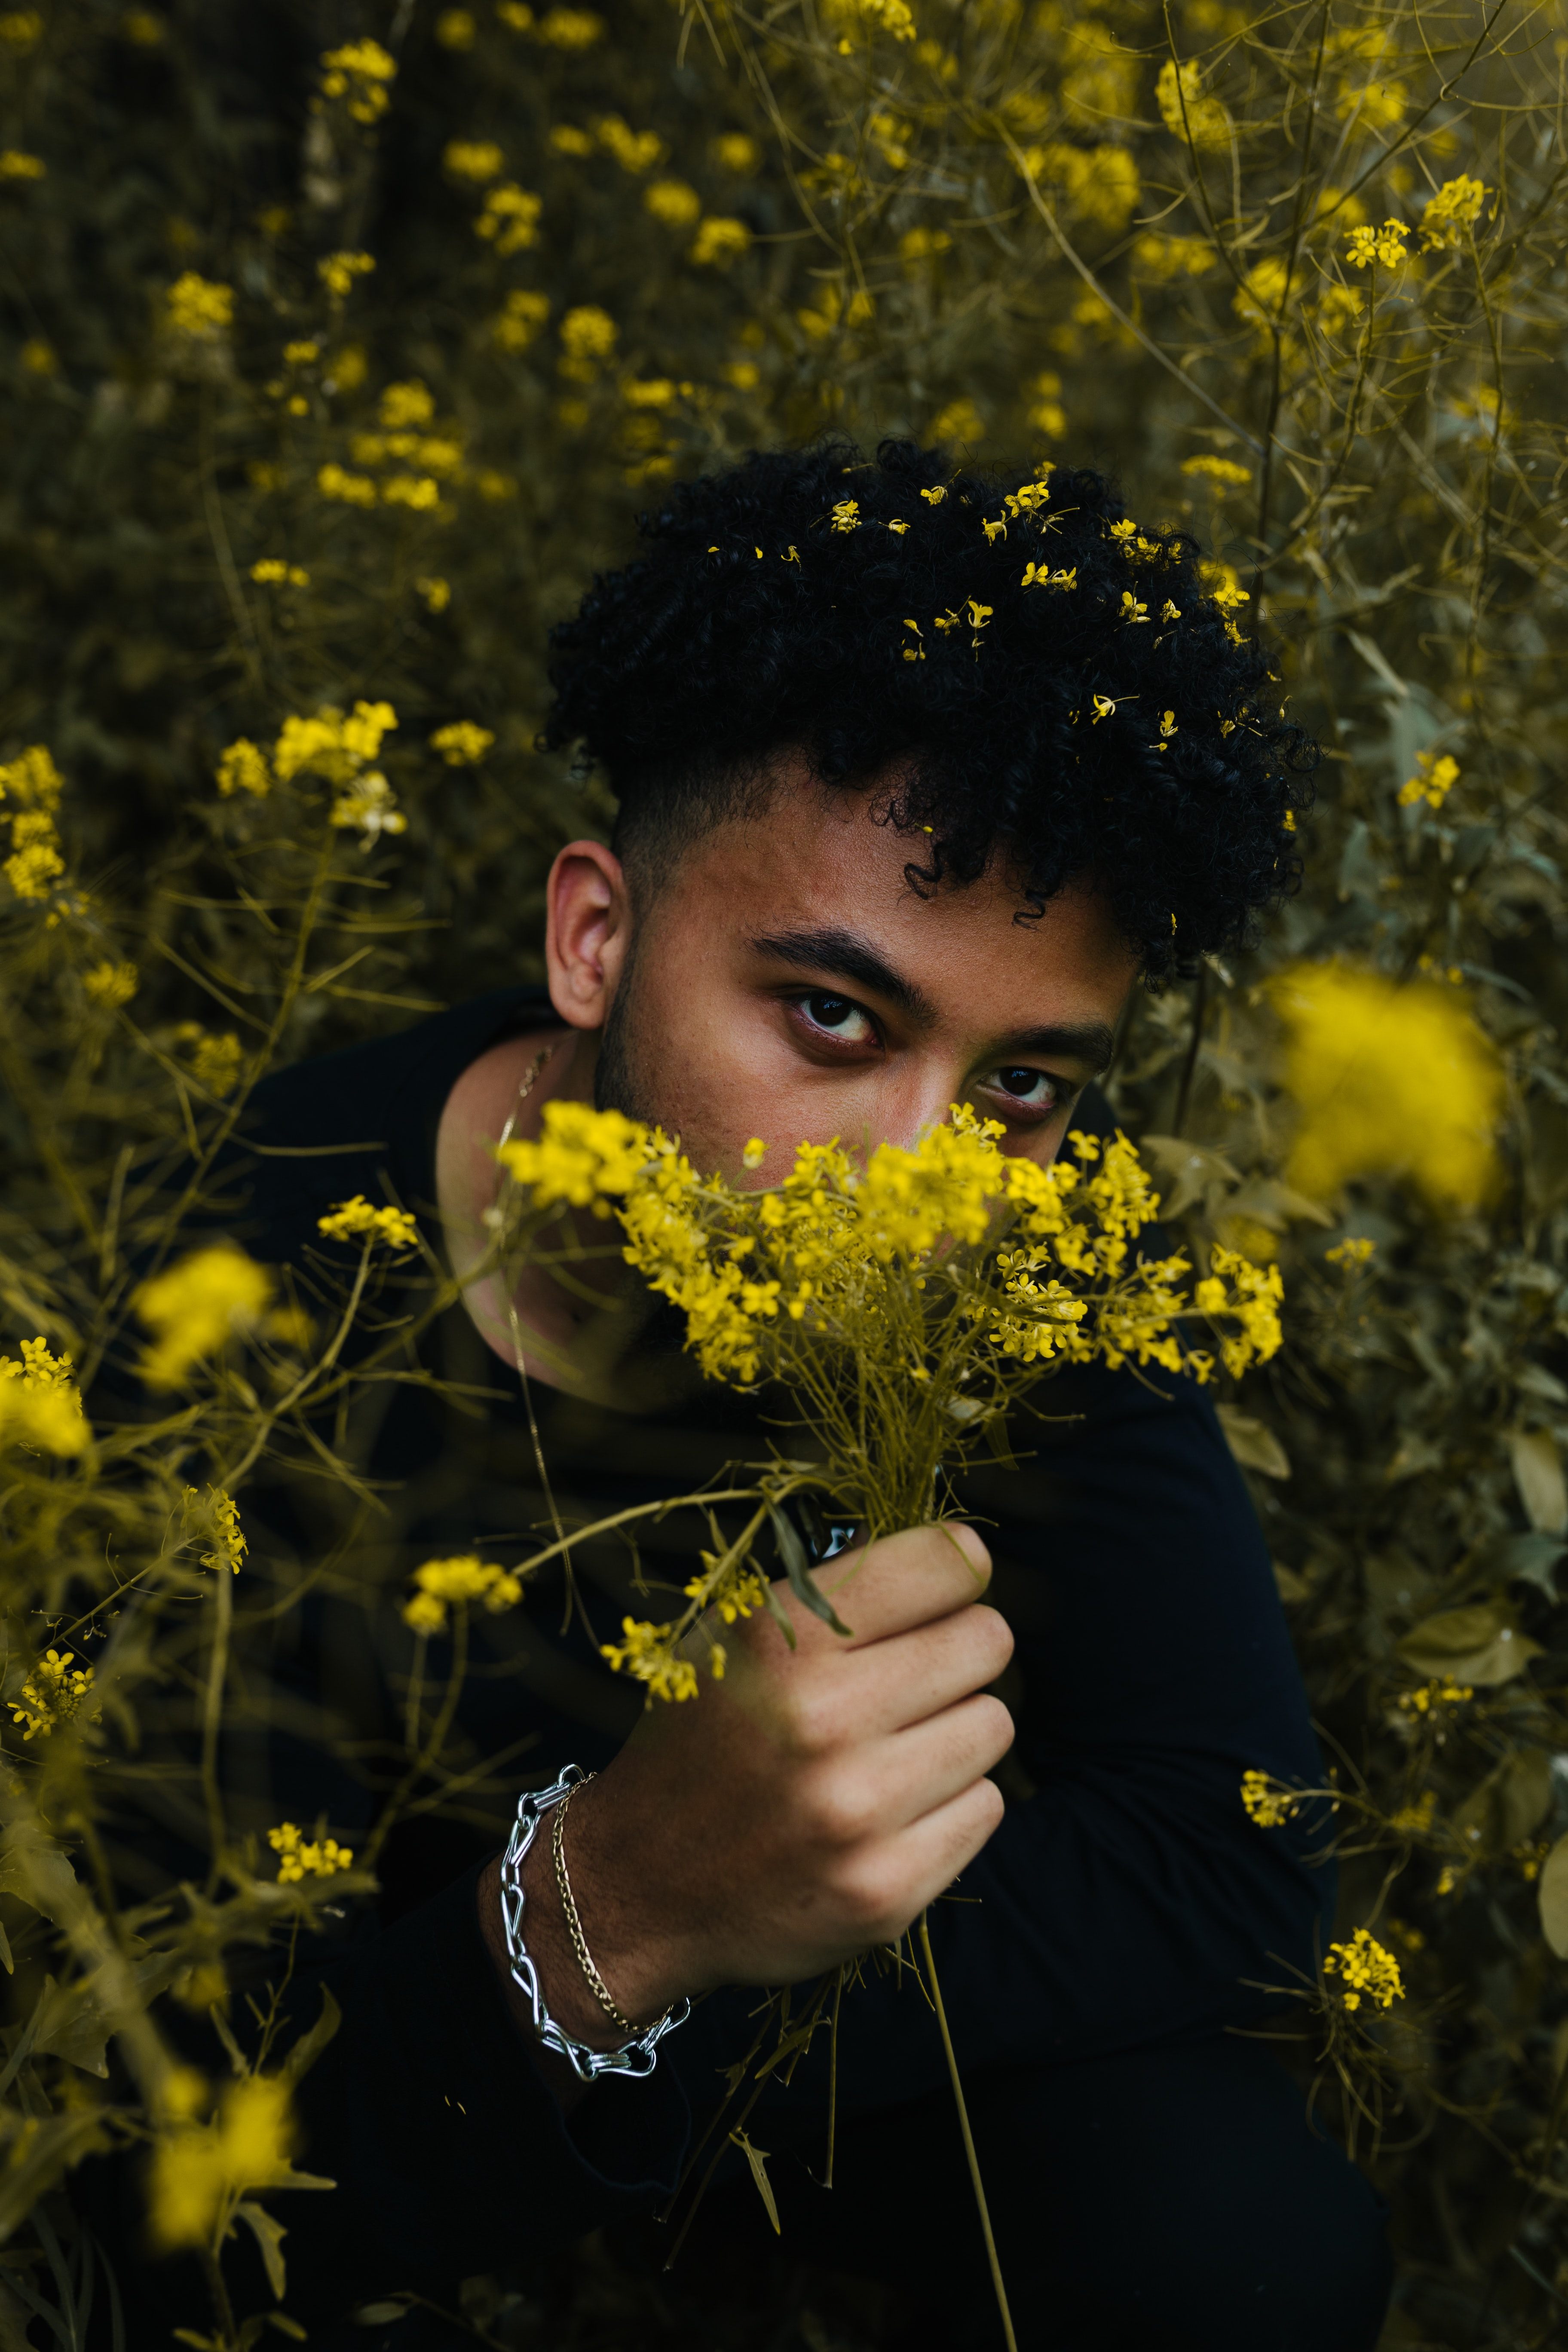 man holding yellow flowers at daytime